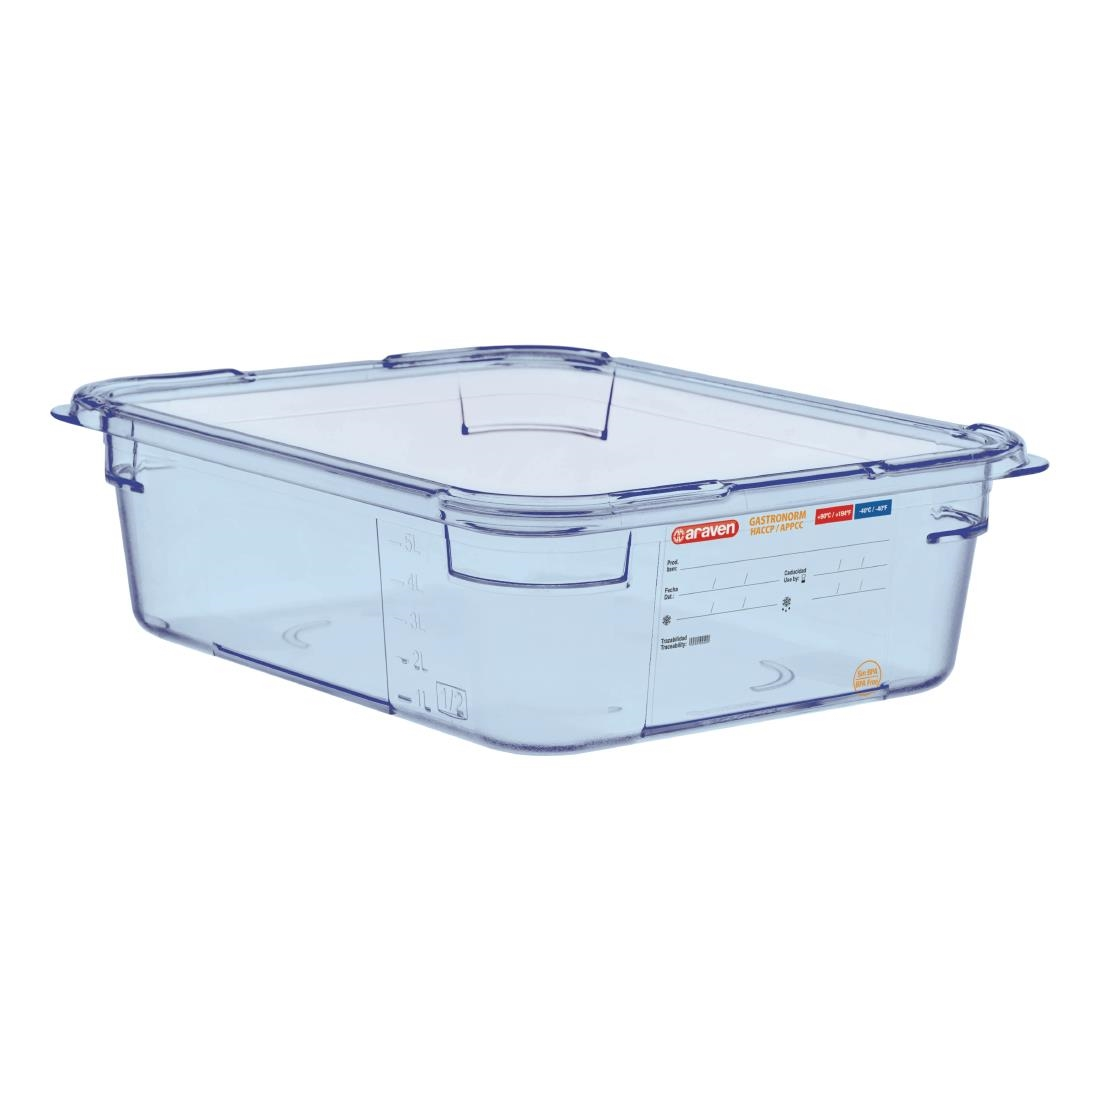 Image of Araven ABS Food Storage Container Blue GN 1/2 100mm